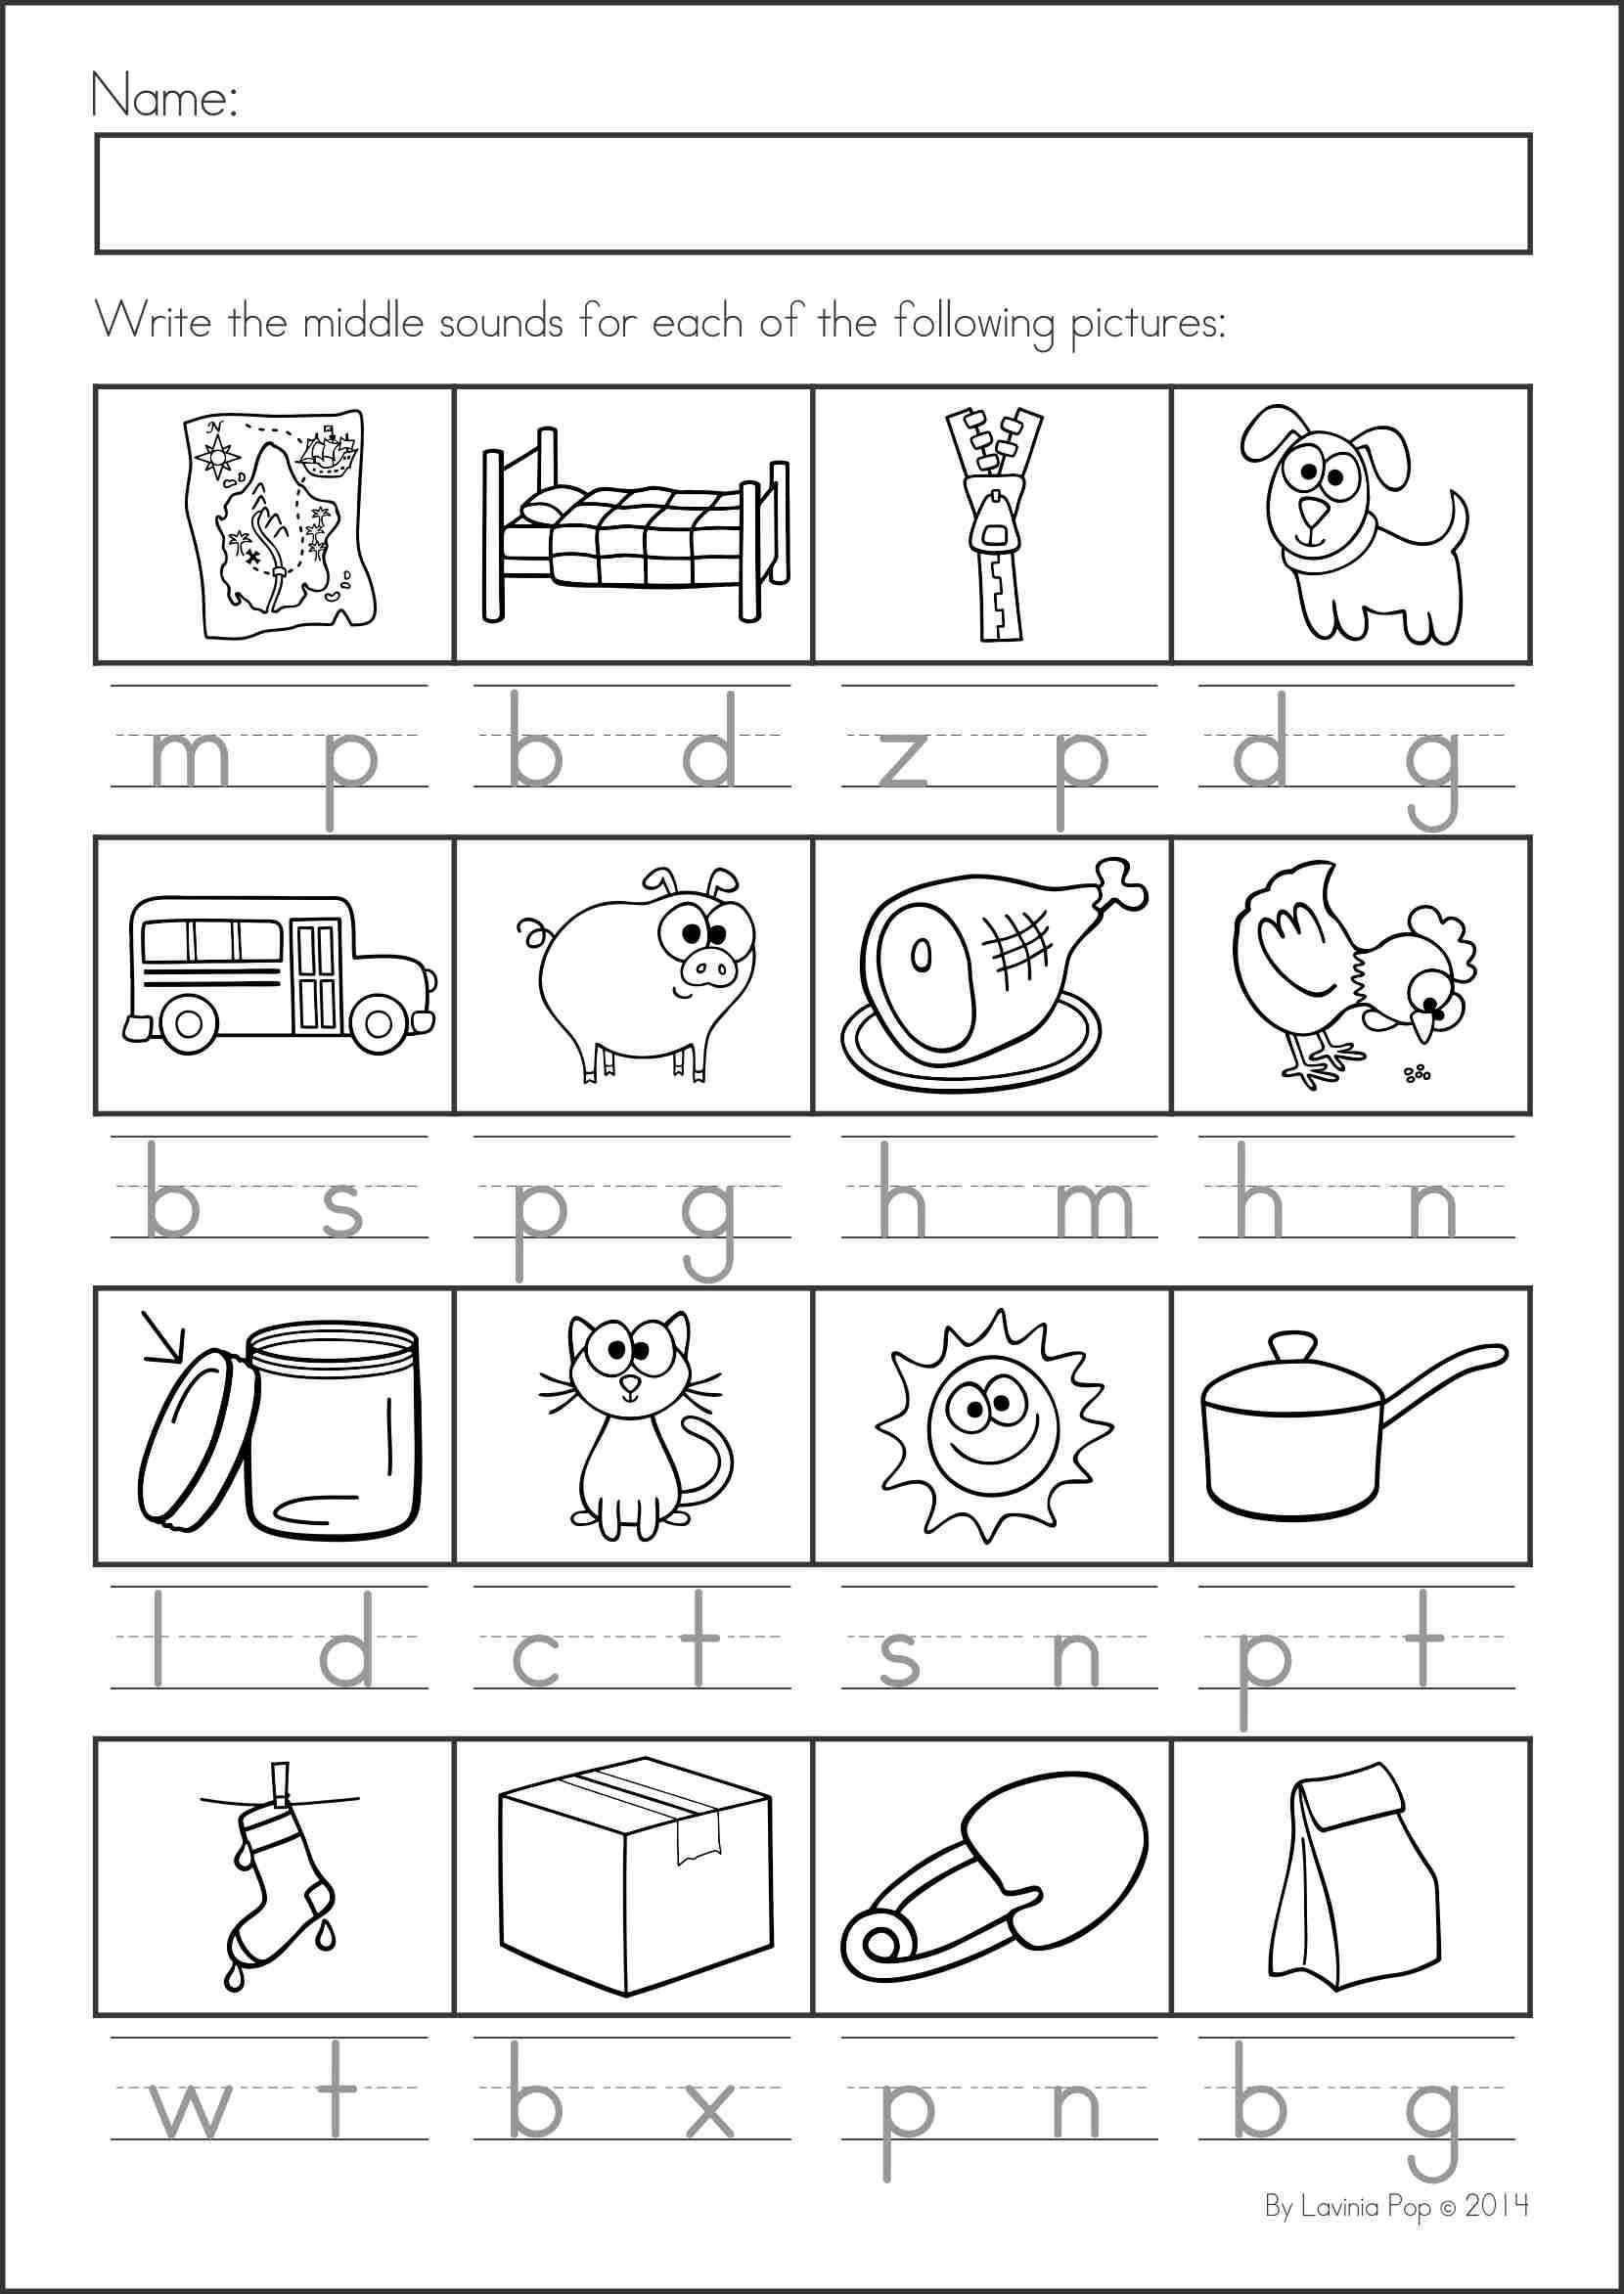 Middle sounds Worksheets for Kindergarten Summer Review Kindergarten Math & Literacy Worksheets